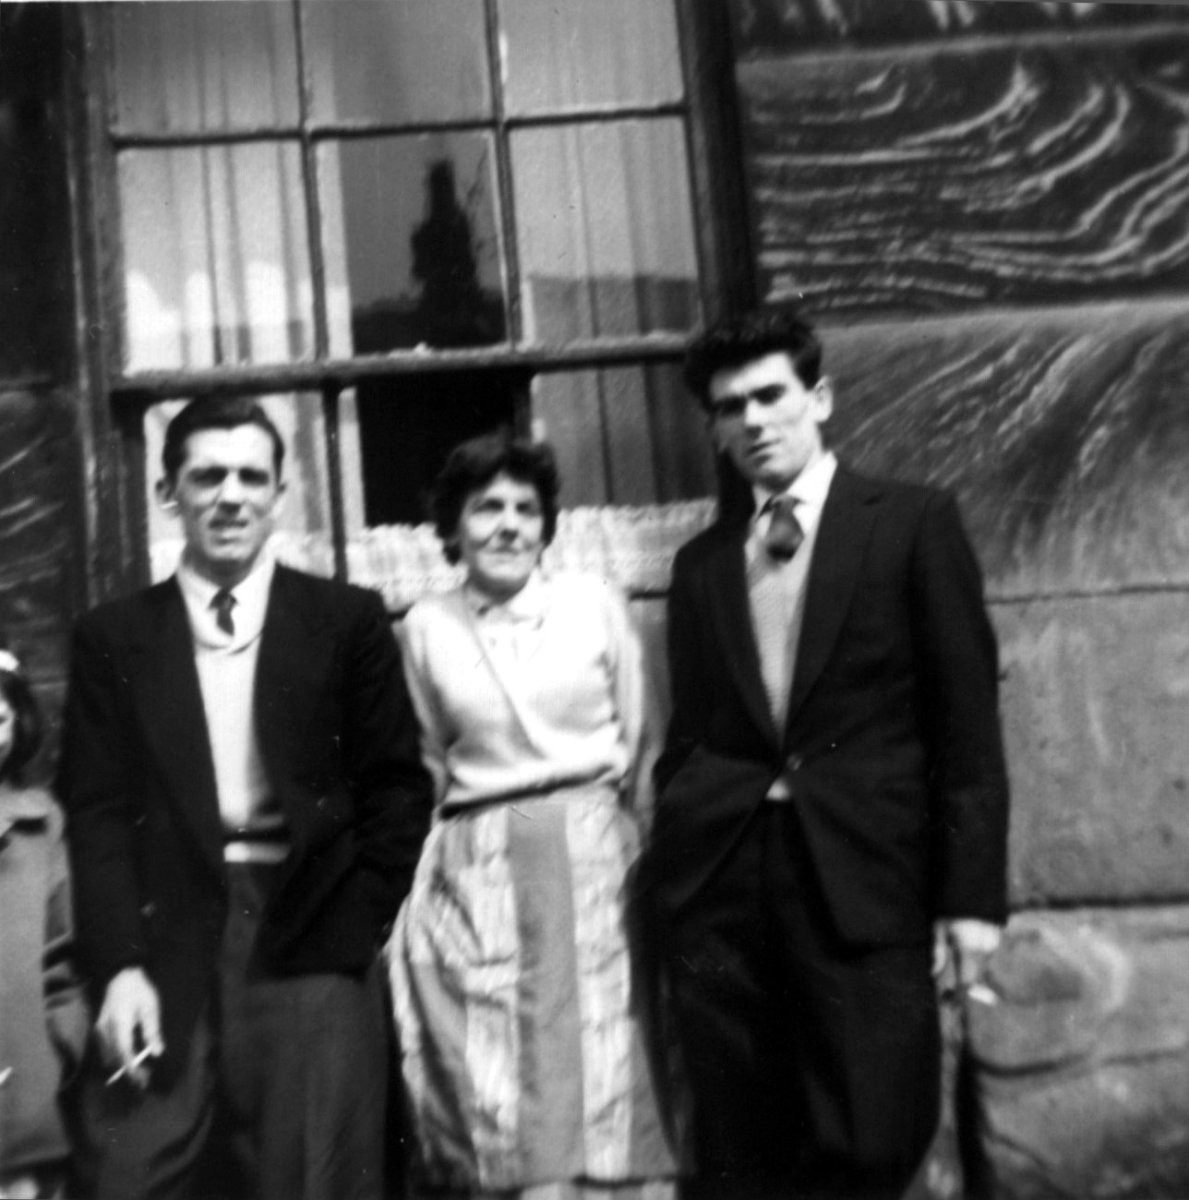 My mum Jeanie and with her two of her brothers Billy and Tommy standing outside nana's house